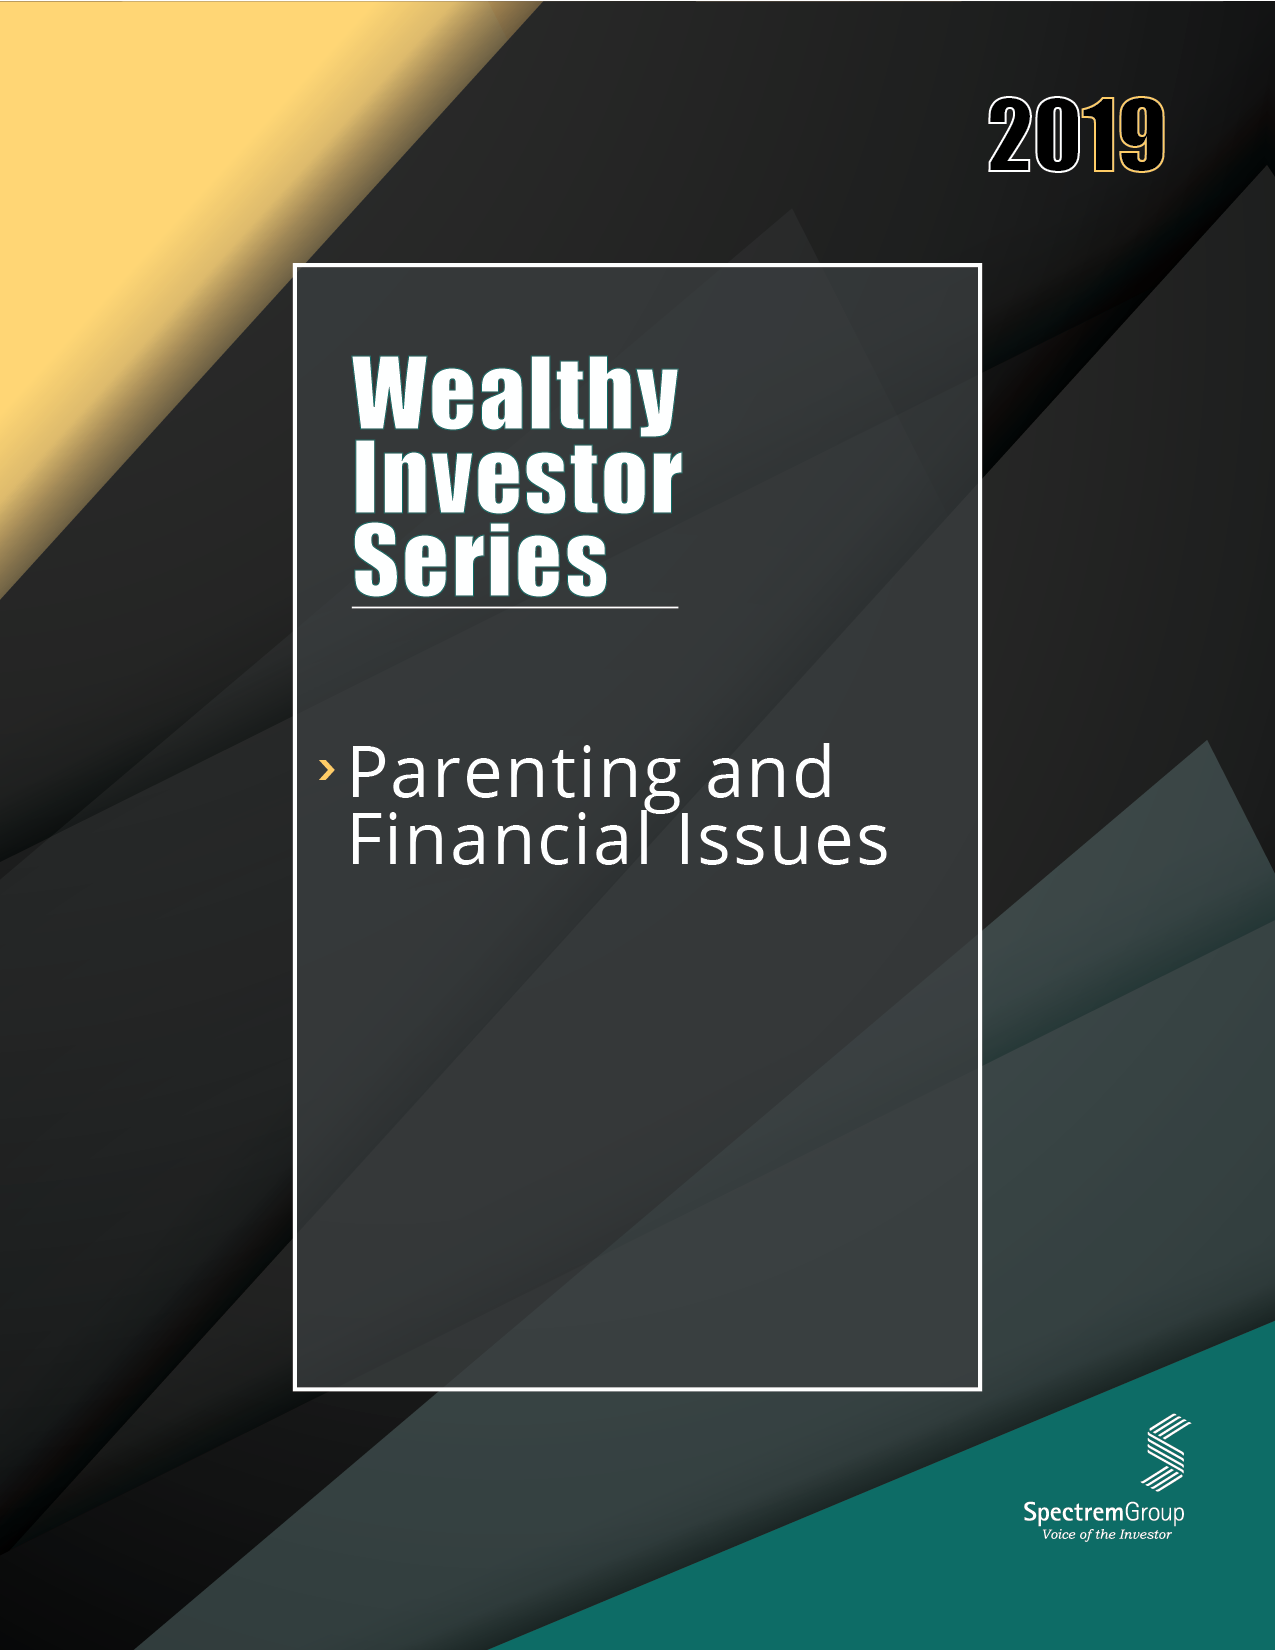 Wealthy Investor Series: Parenting and Financial Issues